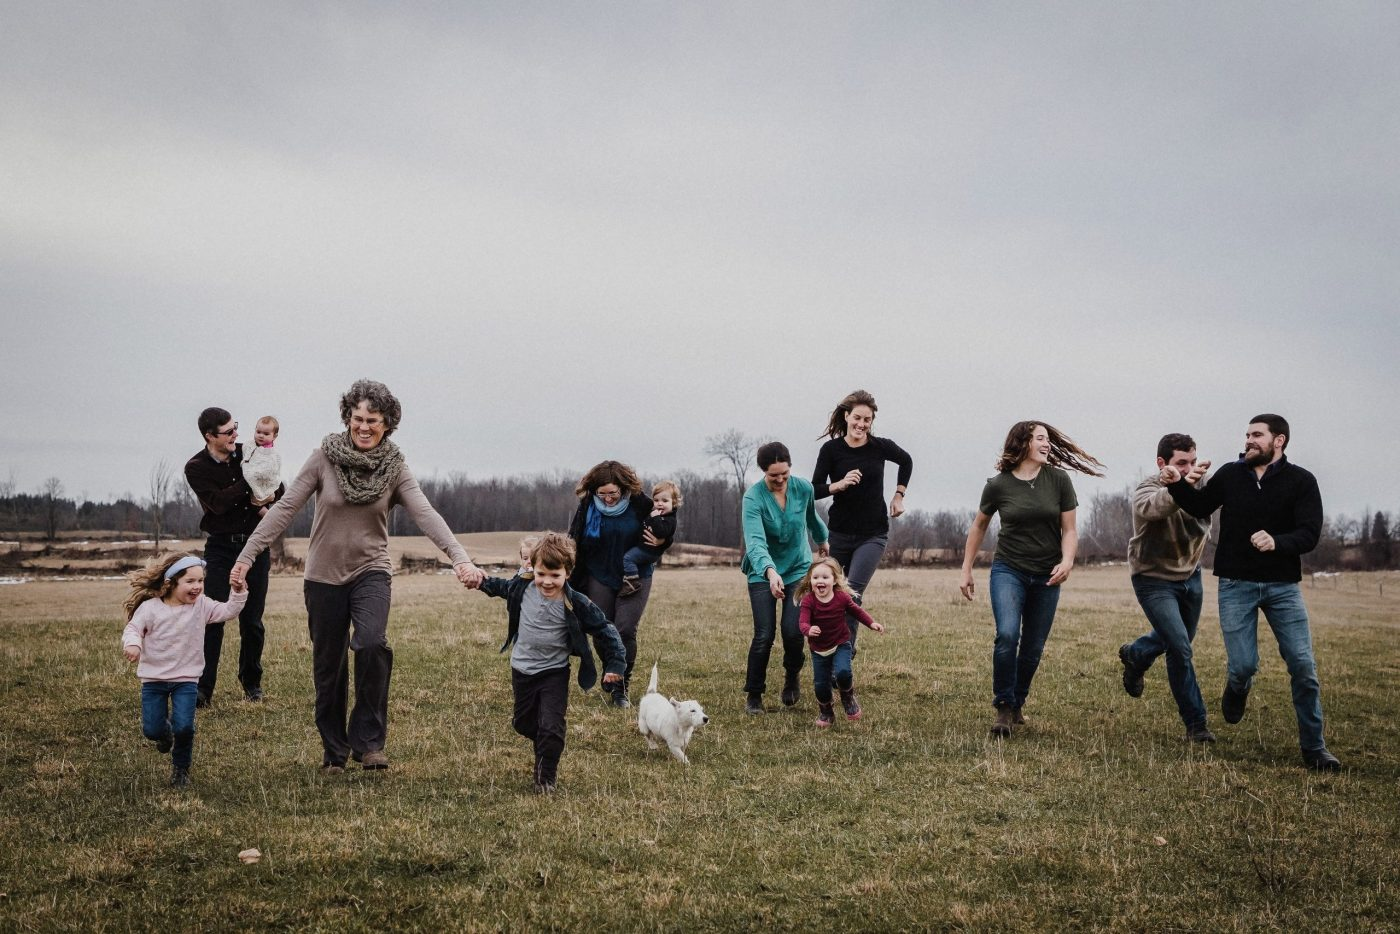 family running through farm field in ontario for family photo session by family photographer heather doughty photography